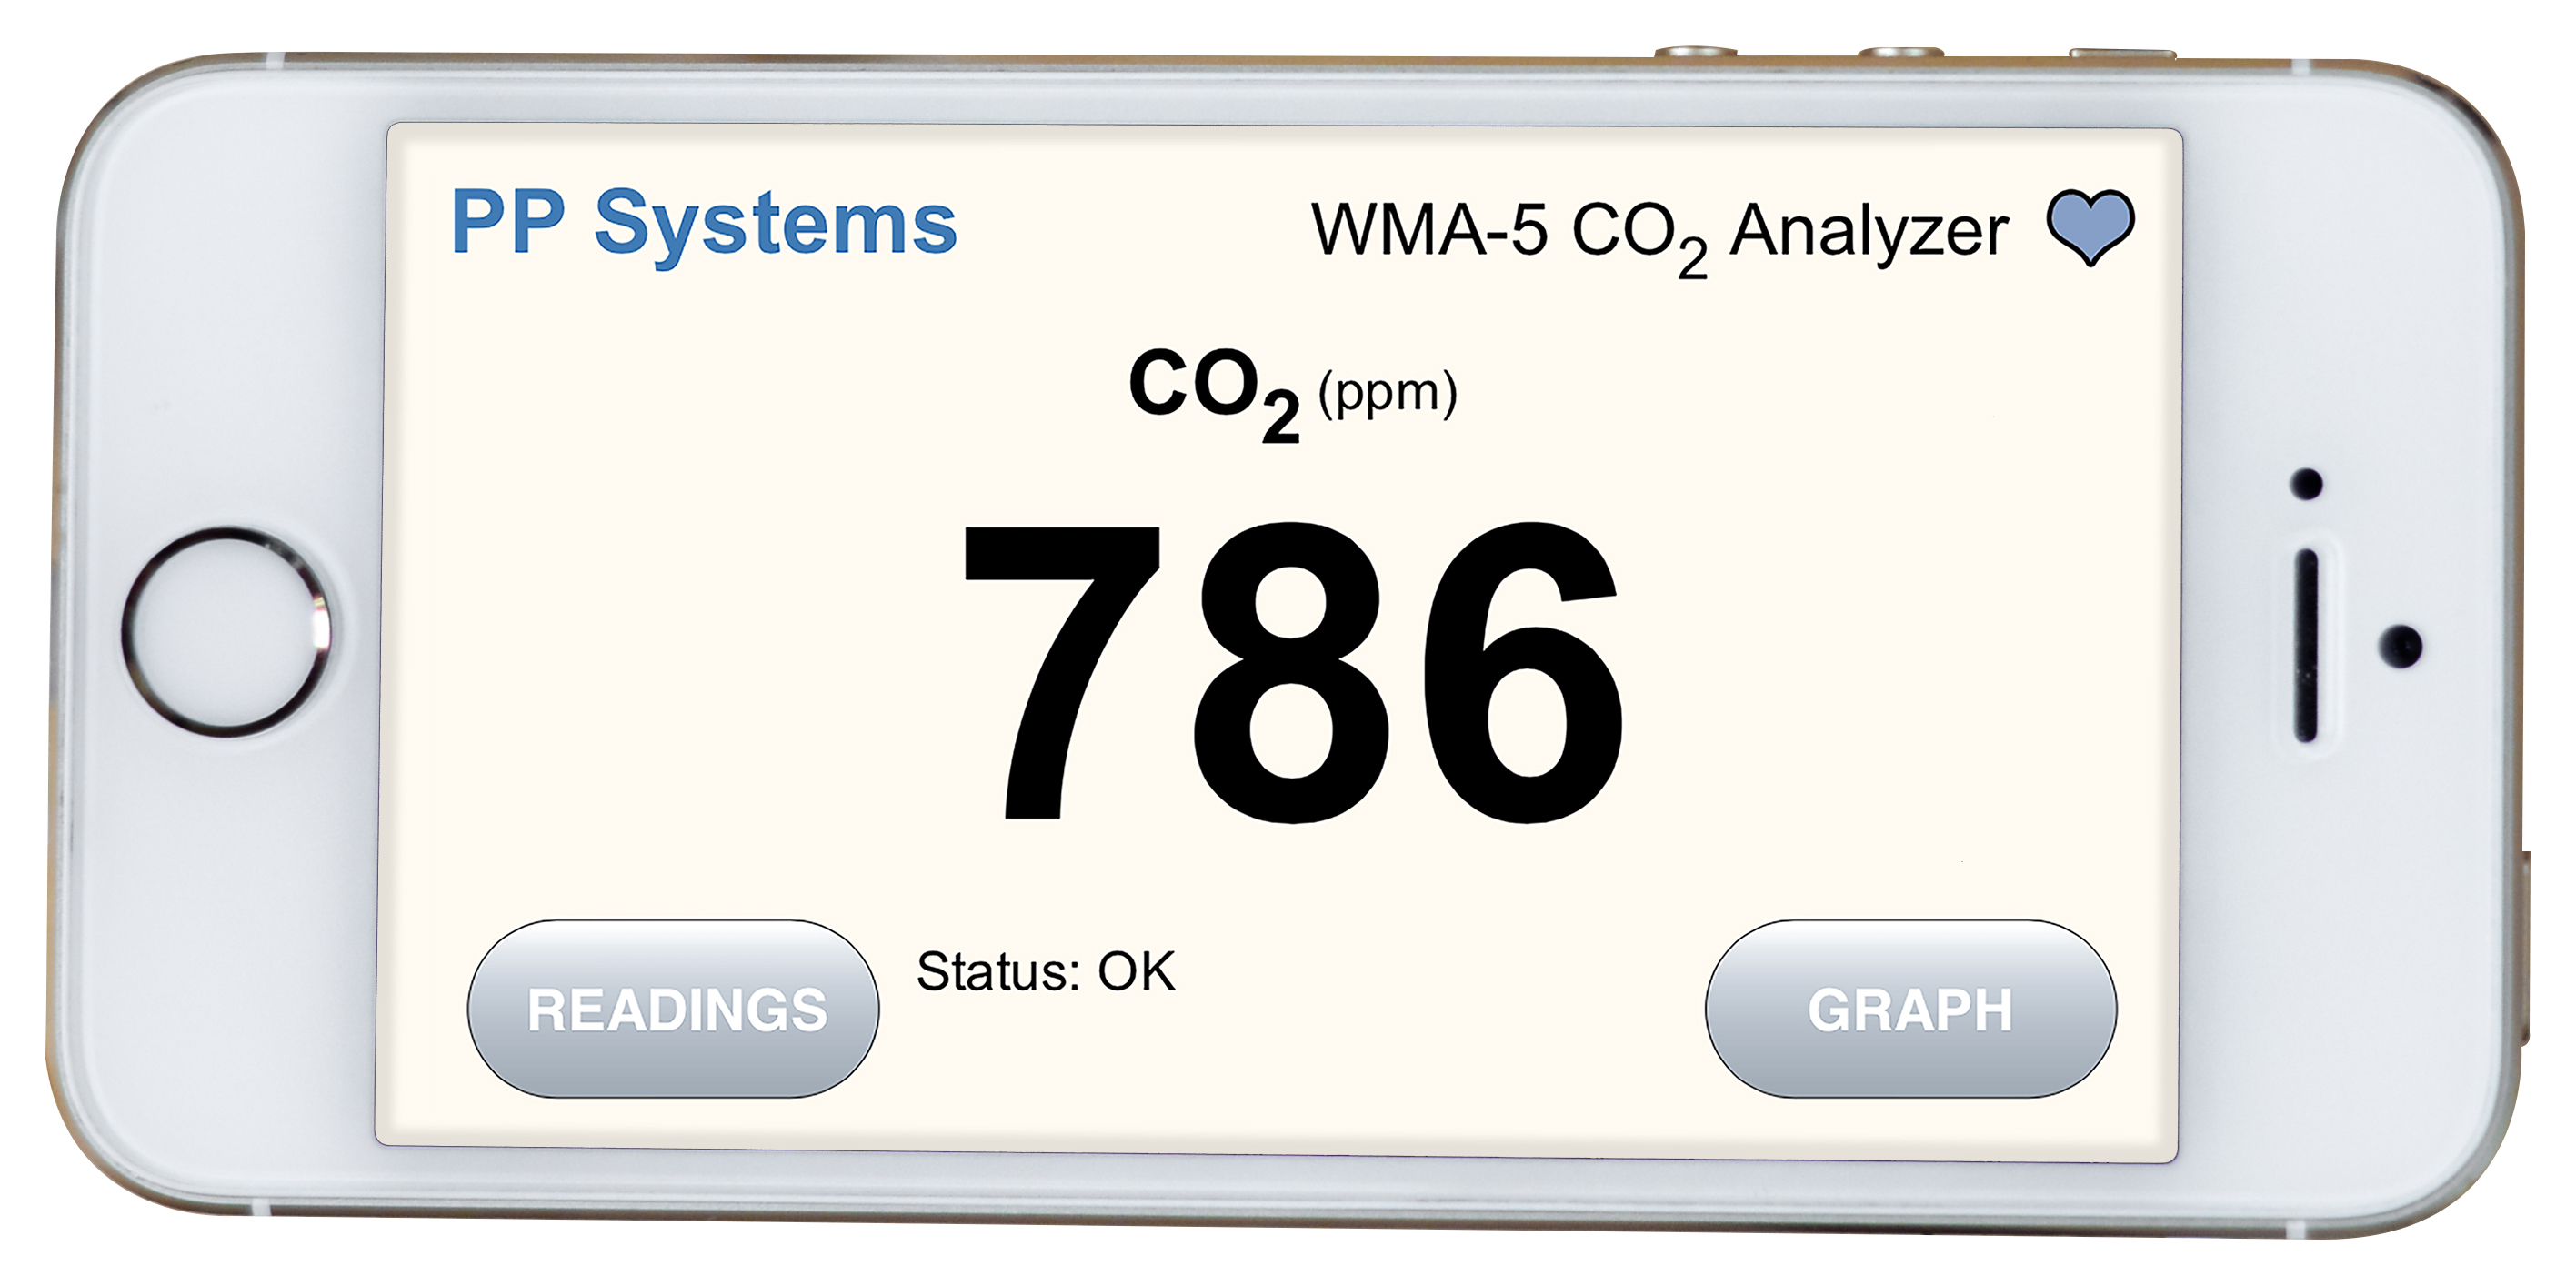 WMA-5 Co2 Gas Analyzer remote monitoring